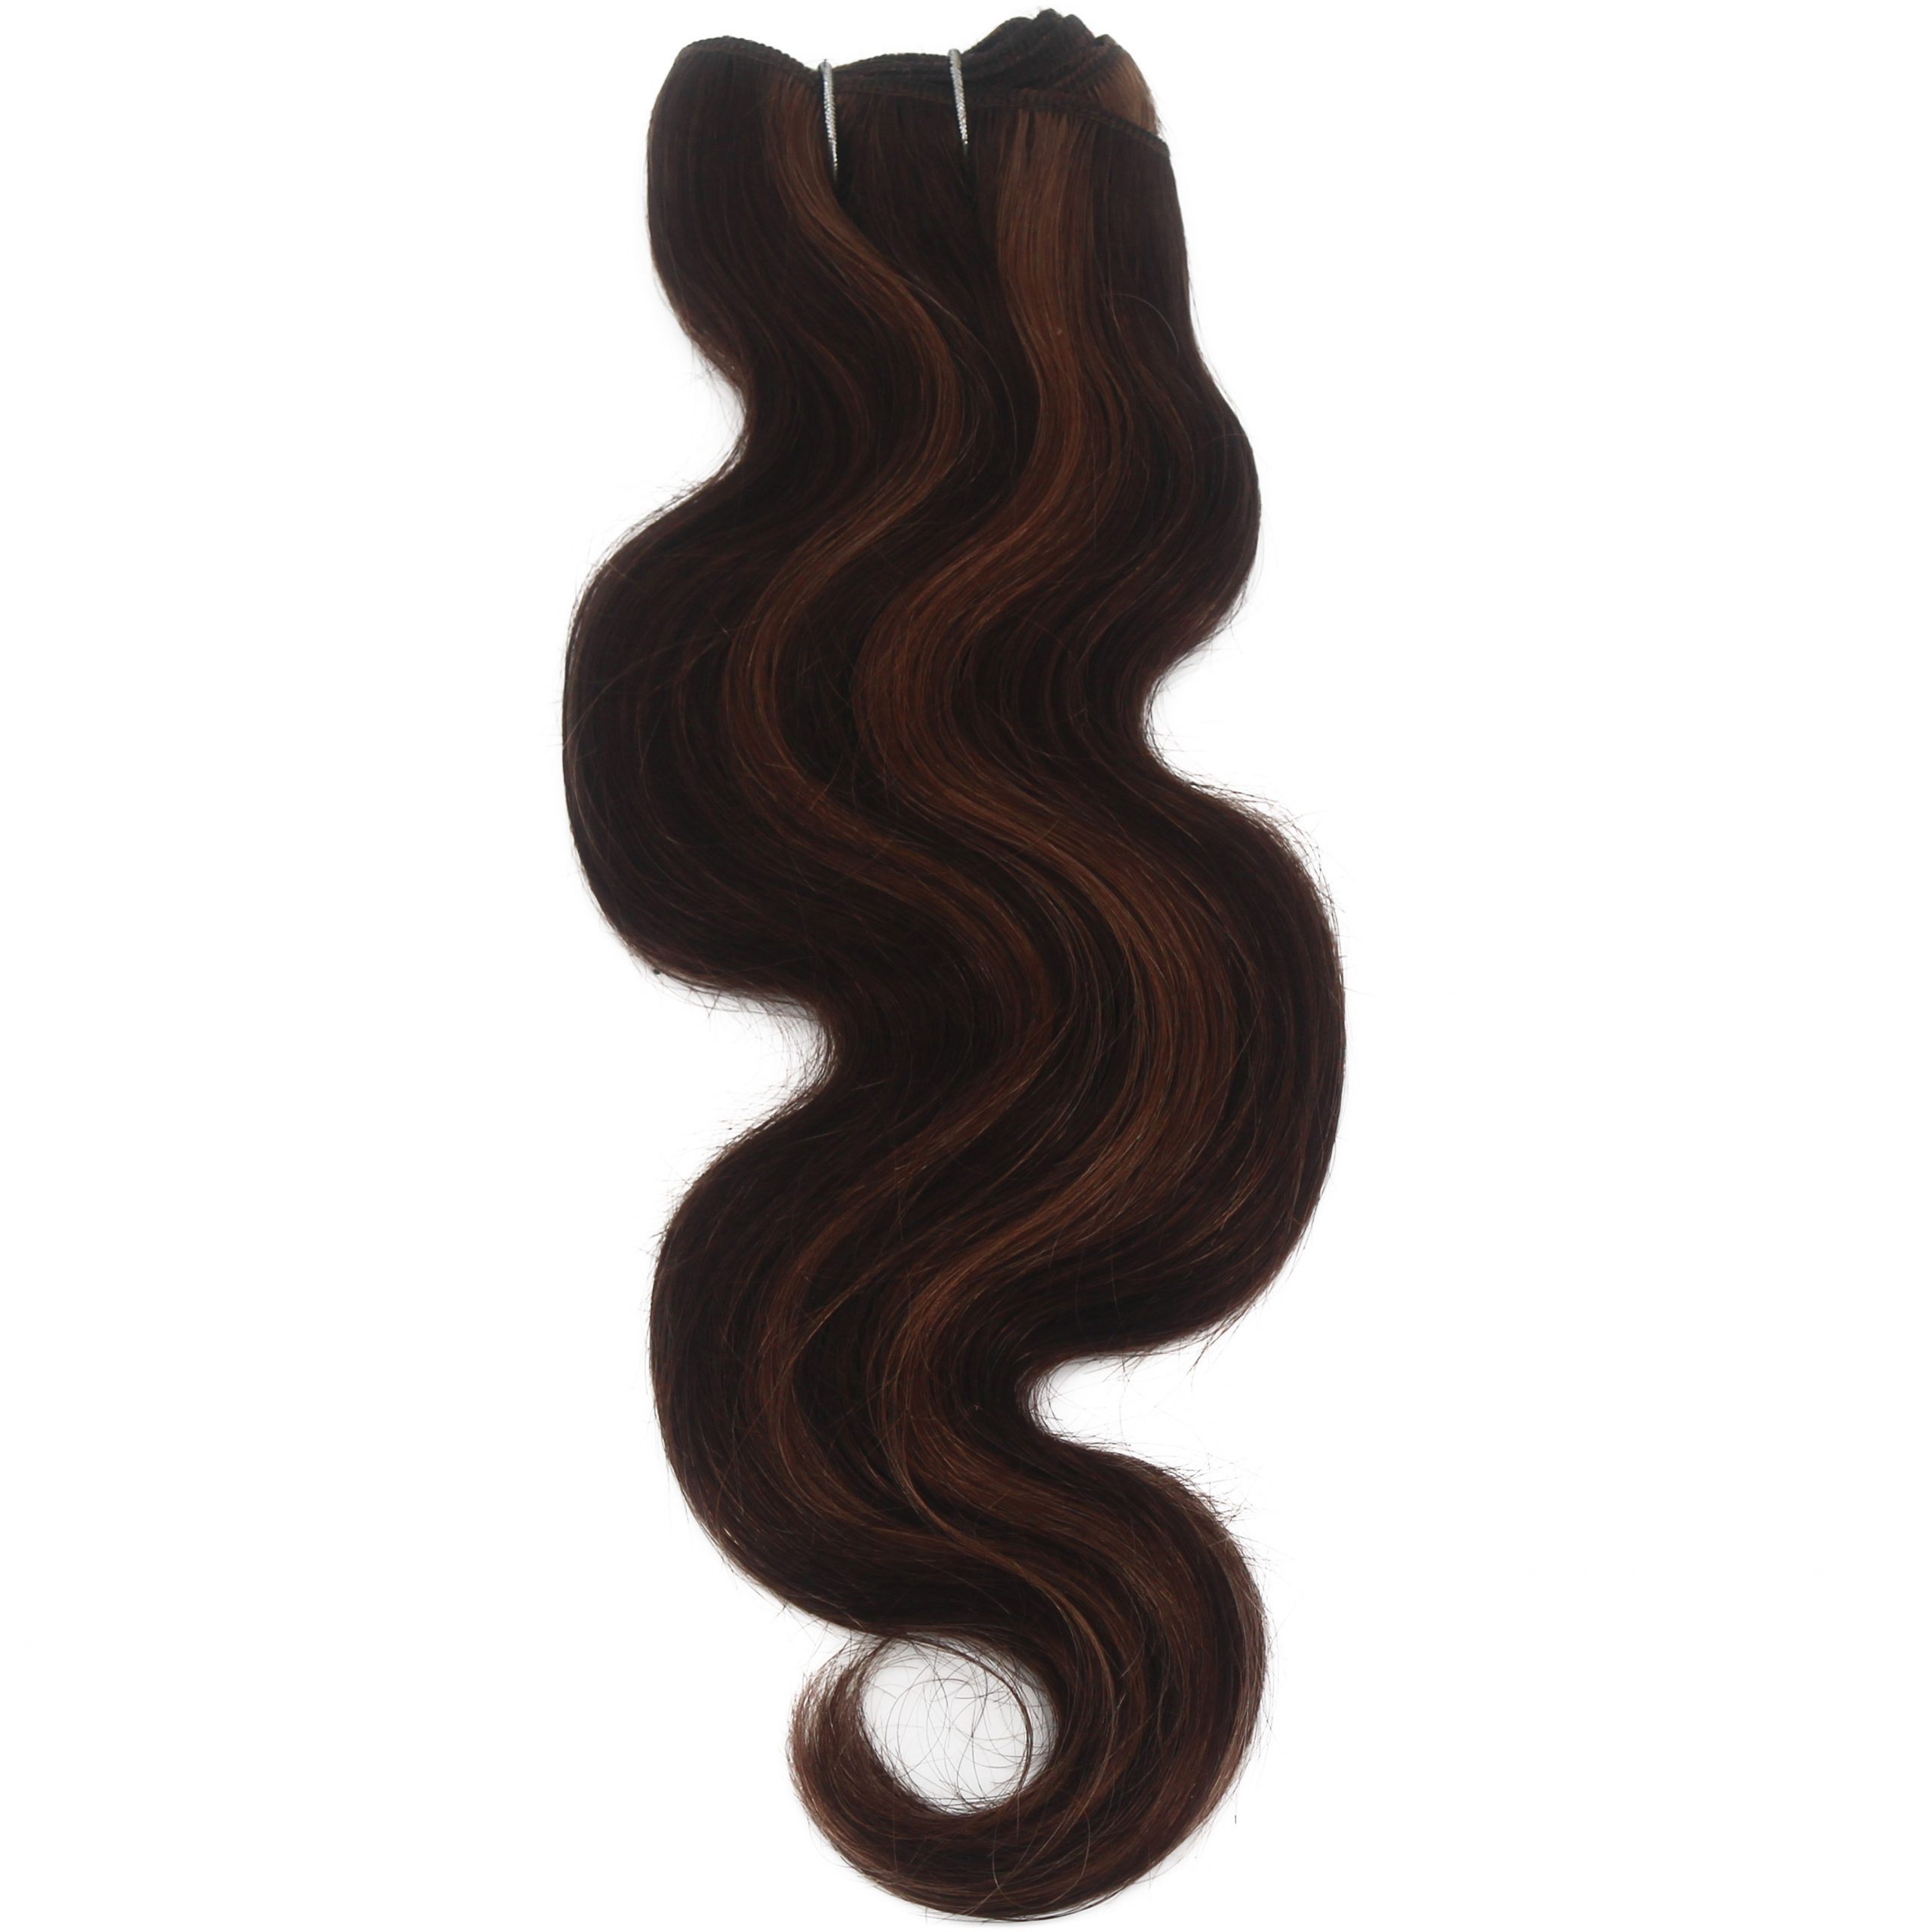 BODY WAVE 100% HUMAN HAIR 18 Inch - P4/30